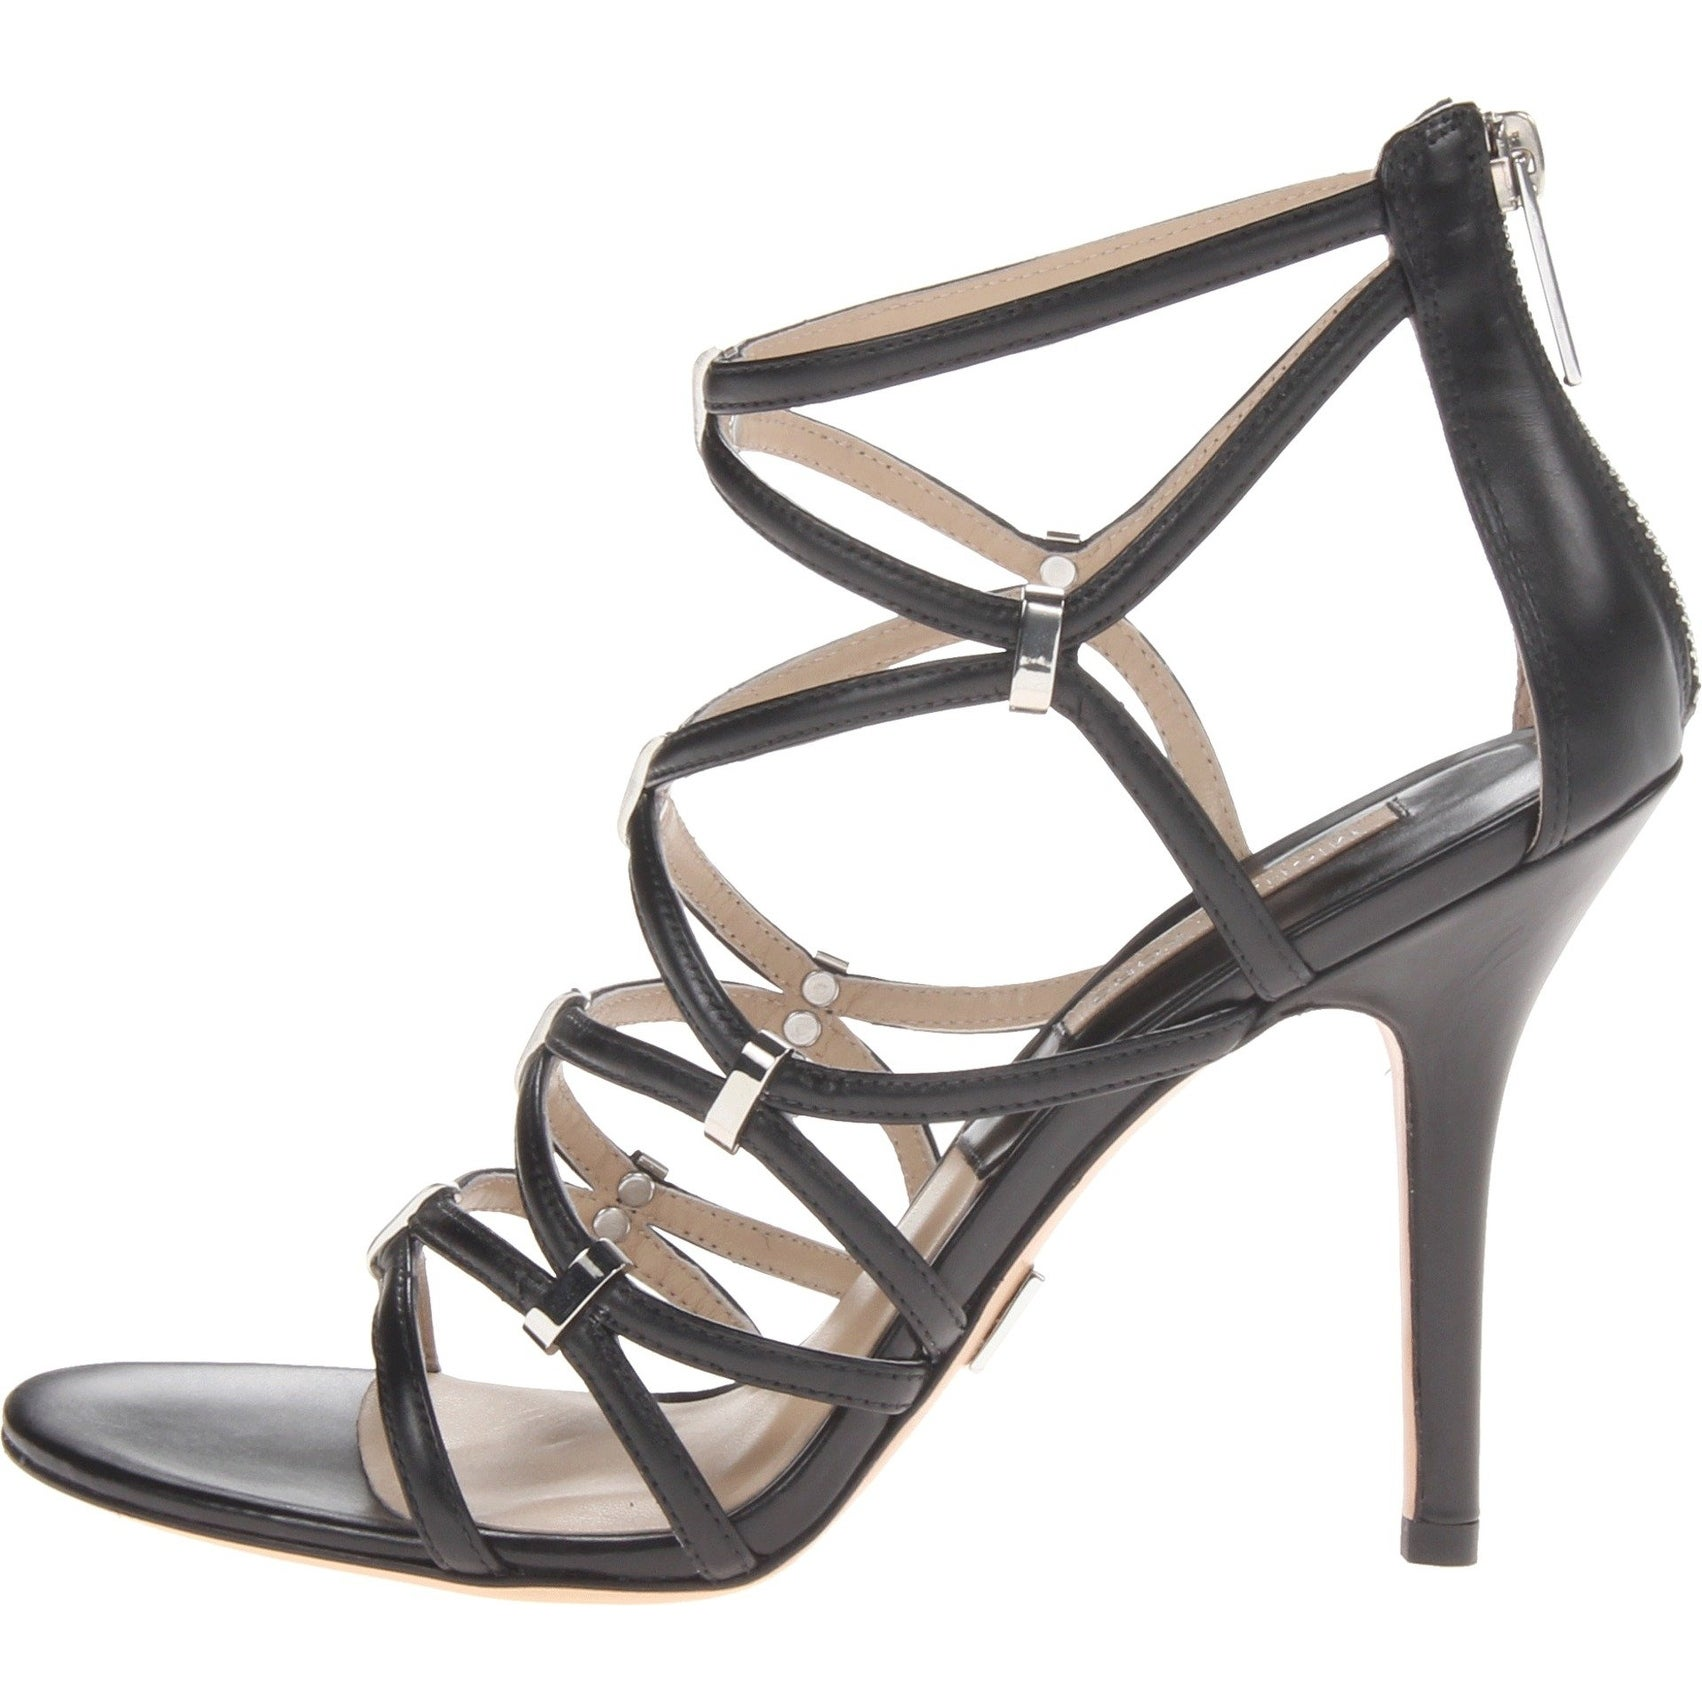 b01fd28405 Shop Michael Kors NEW Black Shoes Size 10M Strappy Leather Heels - Free  Shipping Today - Overstock - 19623626